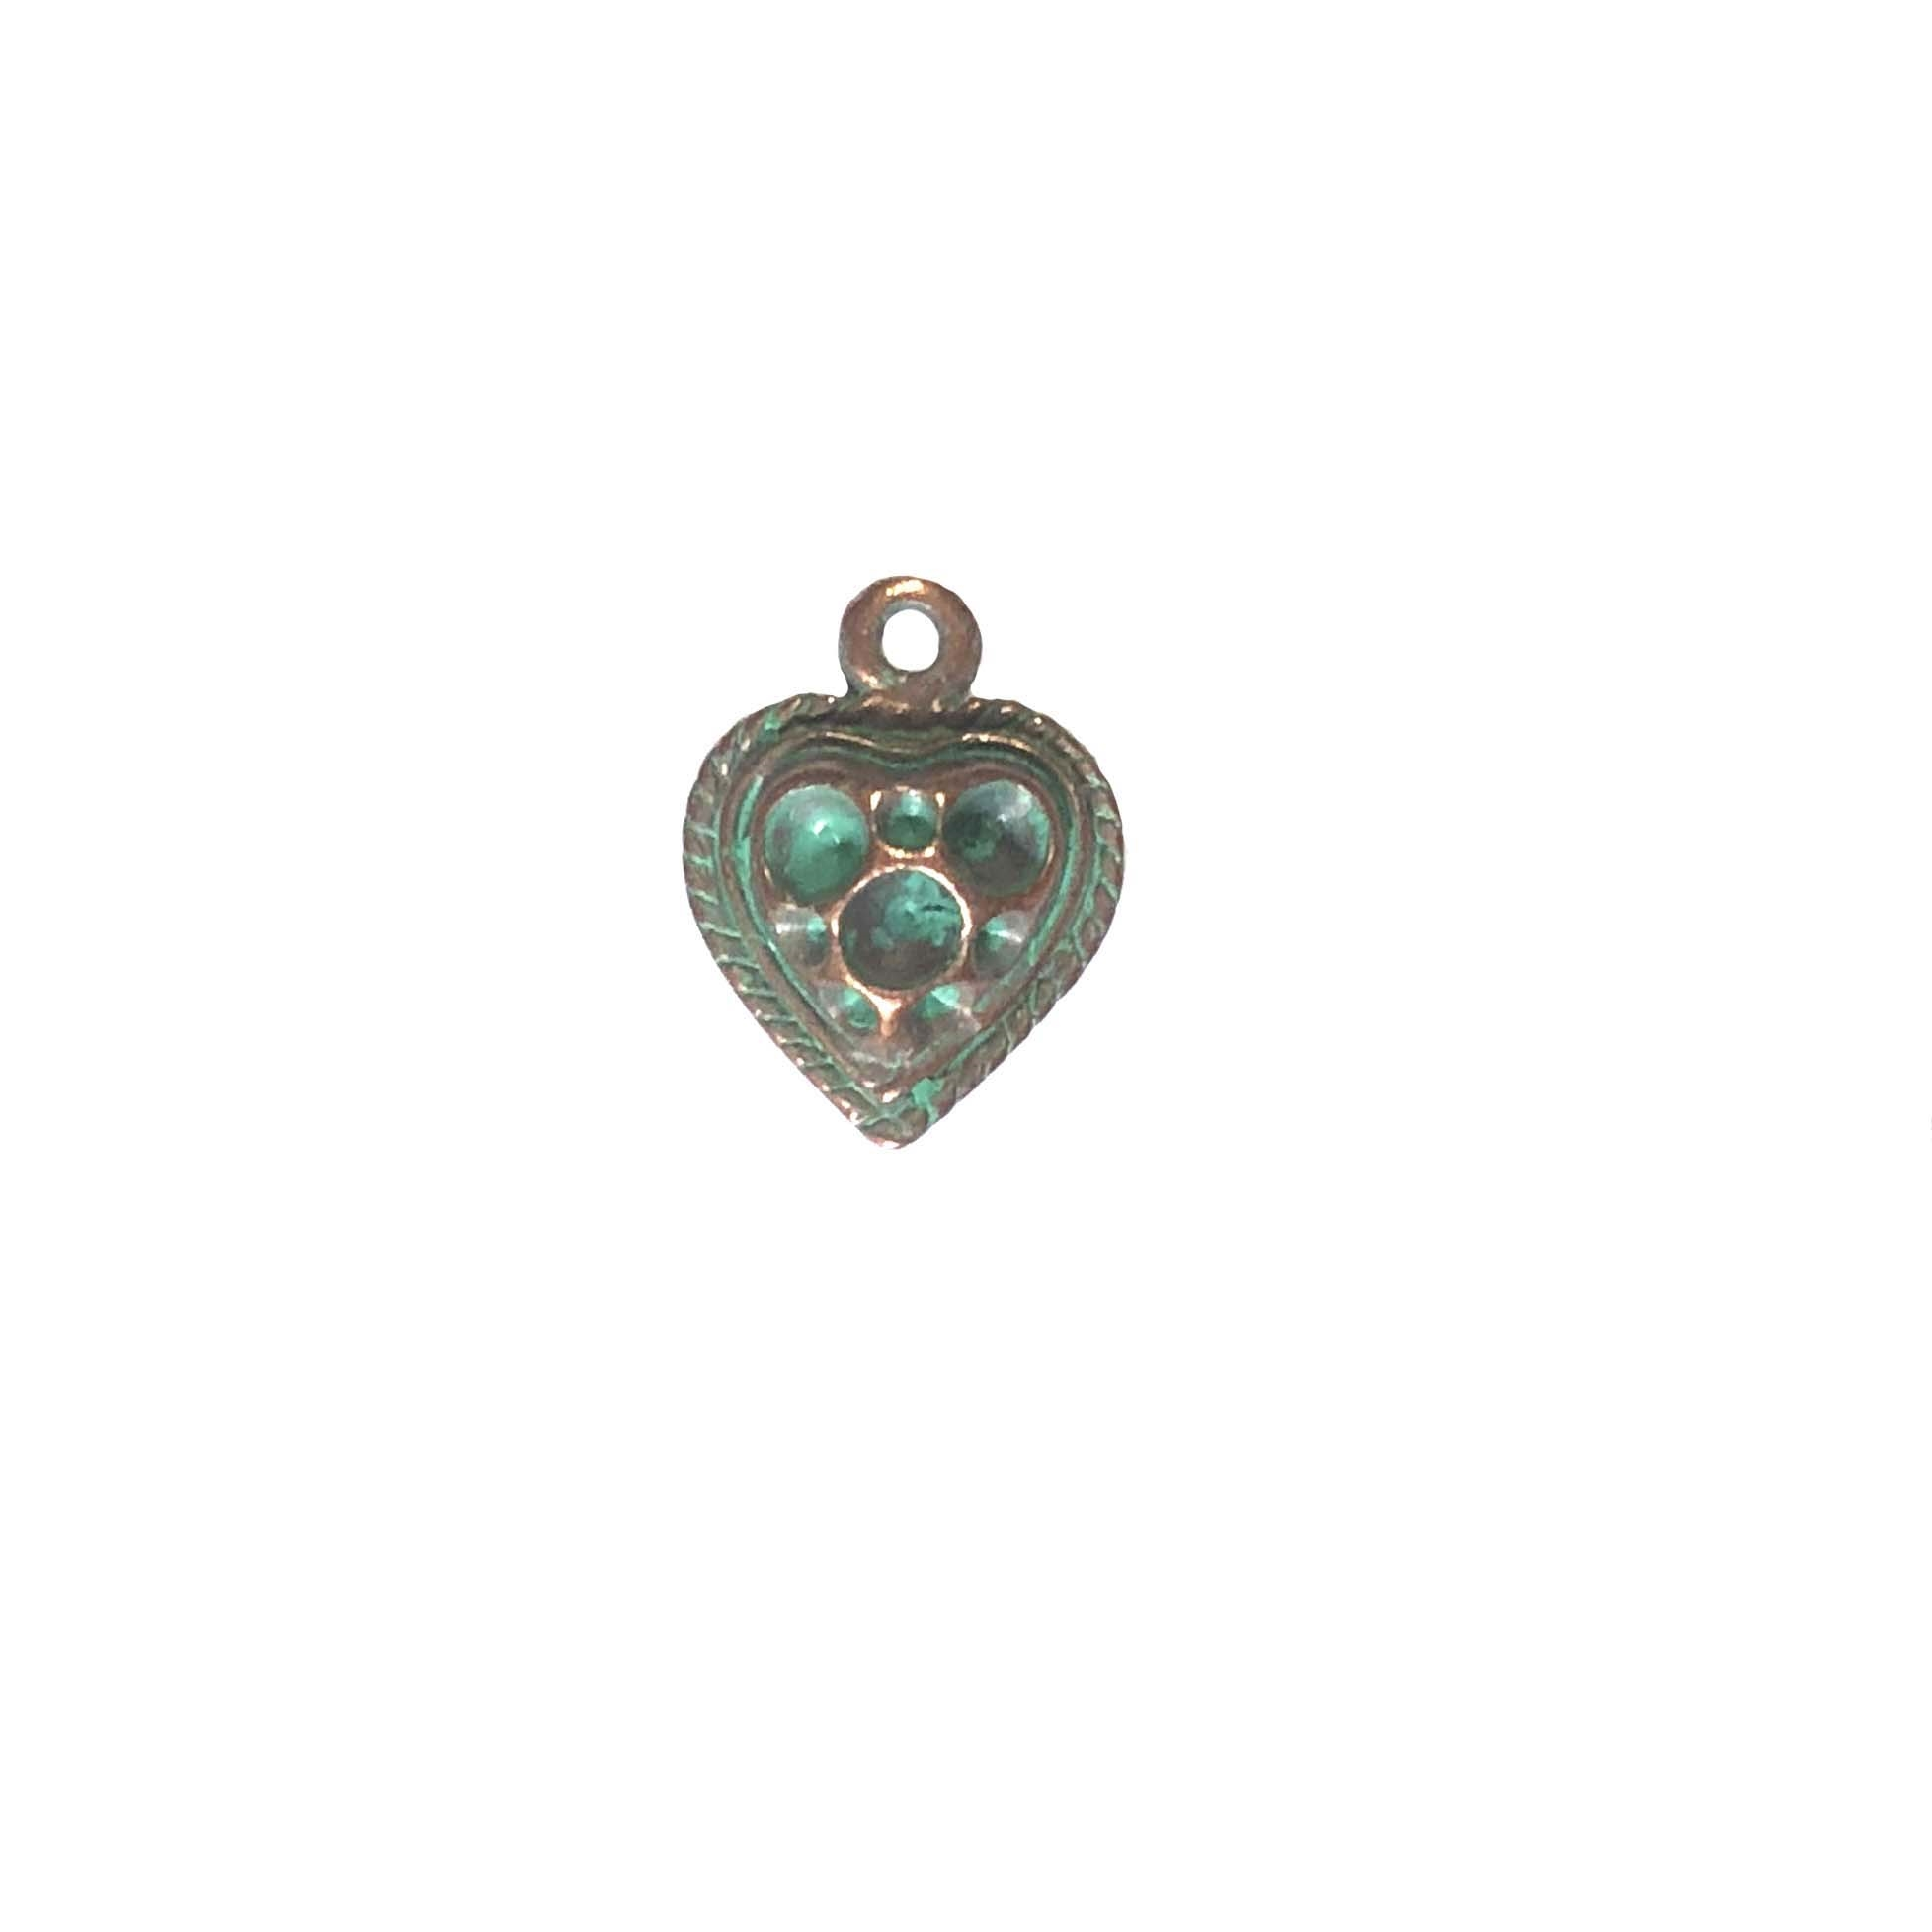 vintage pewter castings, B'sue by 1928, heart charms, bracelet making, weathered cop, nickel free, lead free pewter, green patina, us made, stone set hearts, vintage supplies, 1928 jewelry, B'sue Boutiques, 15x11mm, heart, charm, pewter, copper 0304